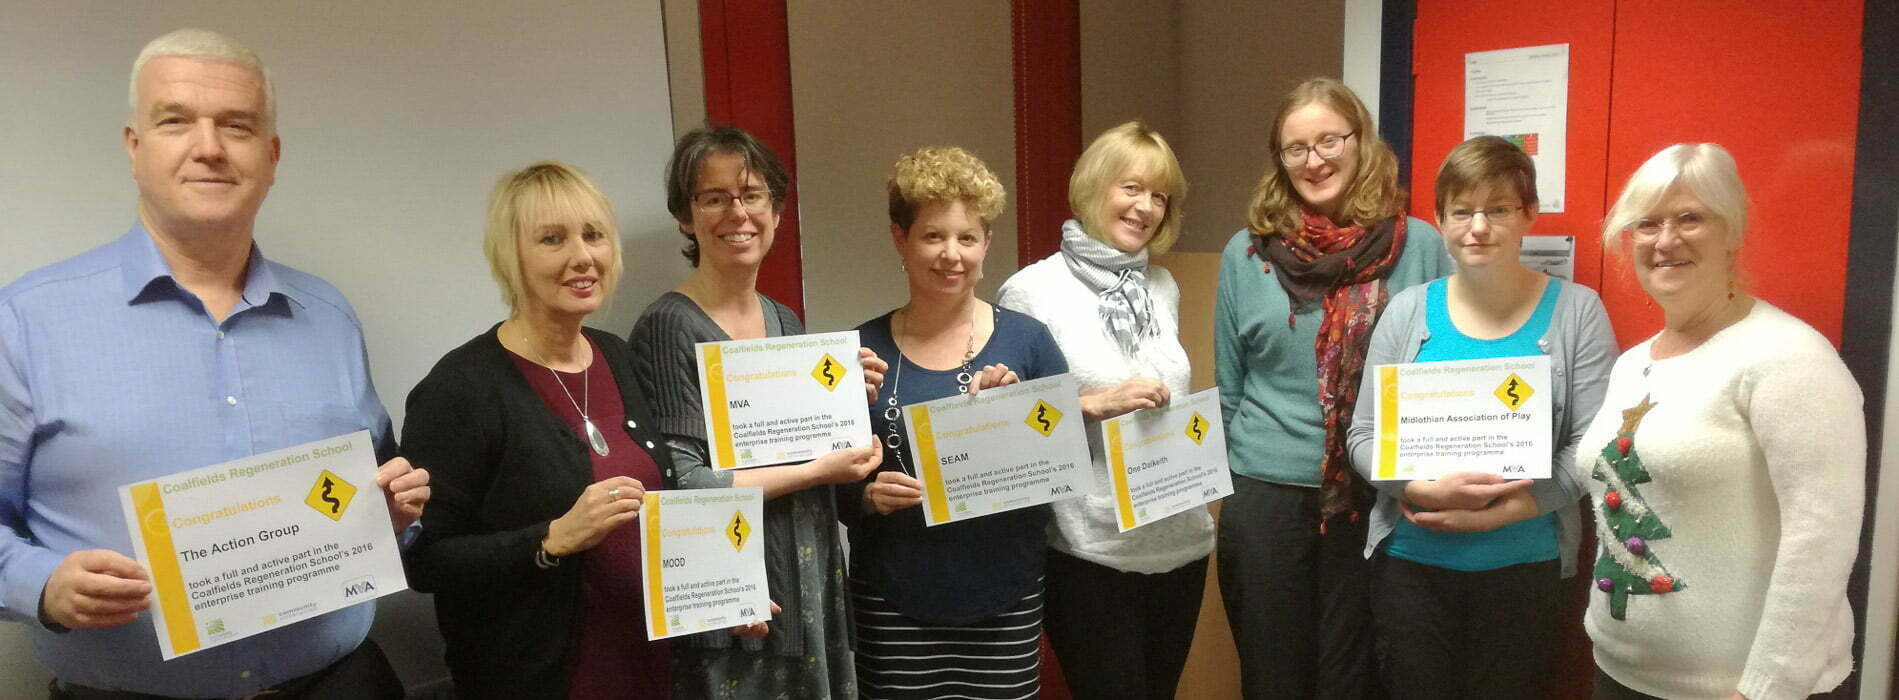 Group of people with certificates